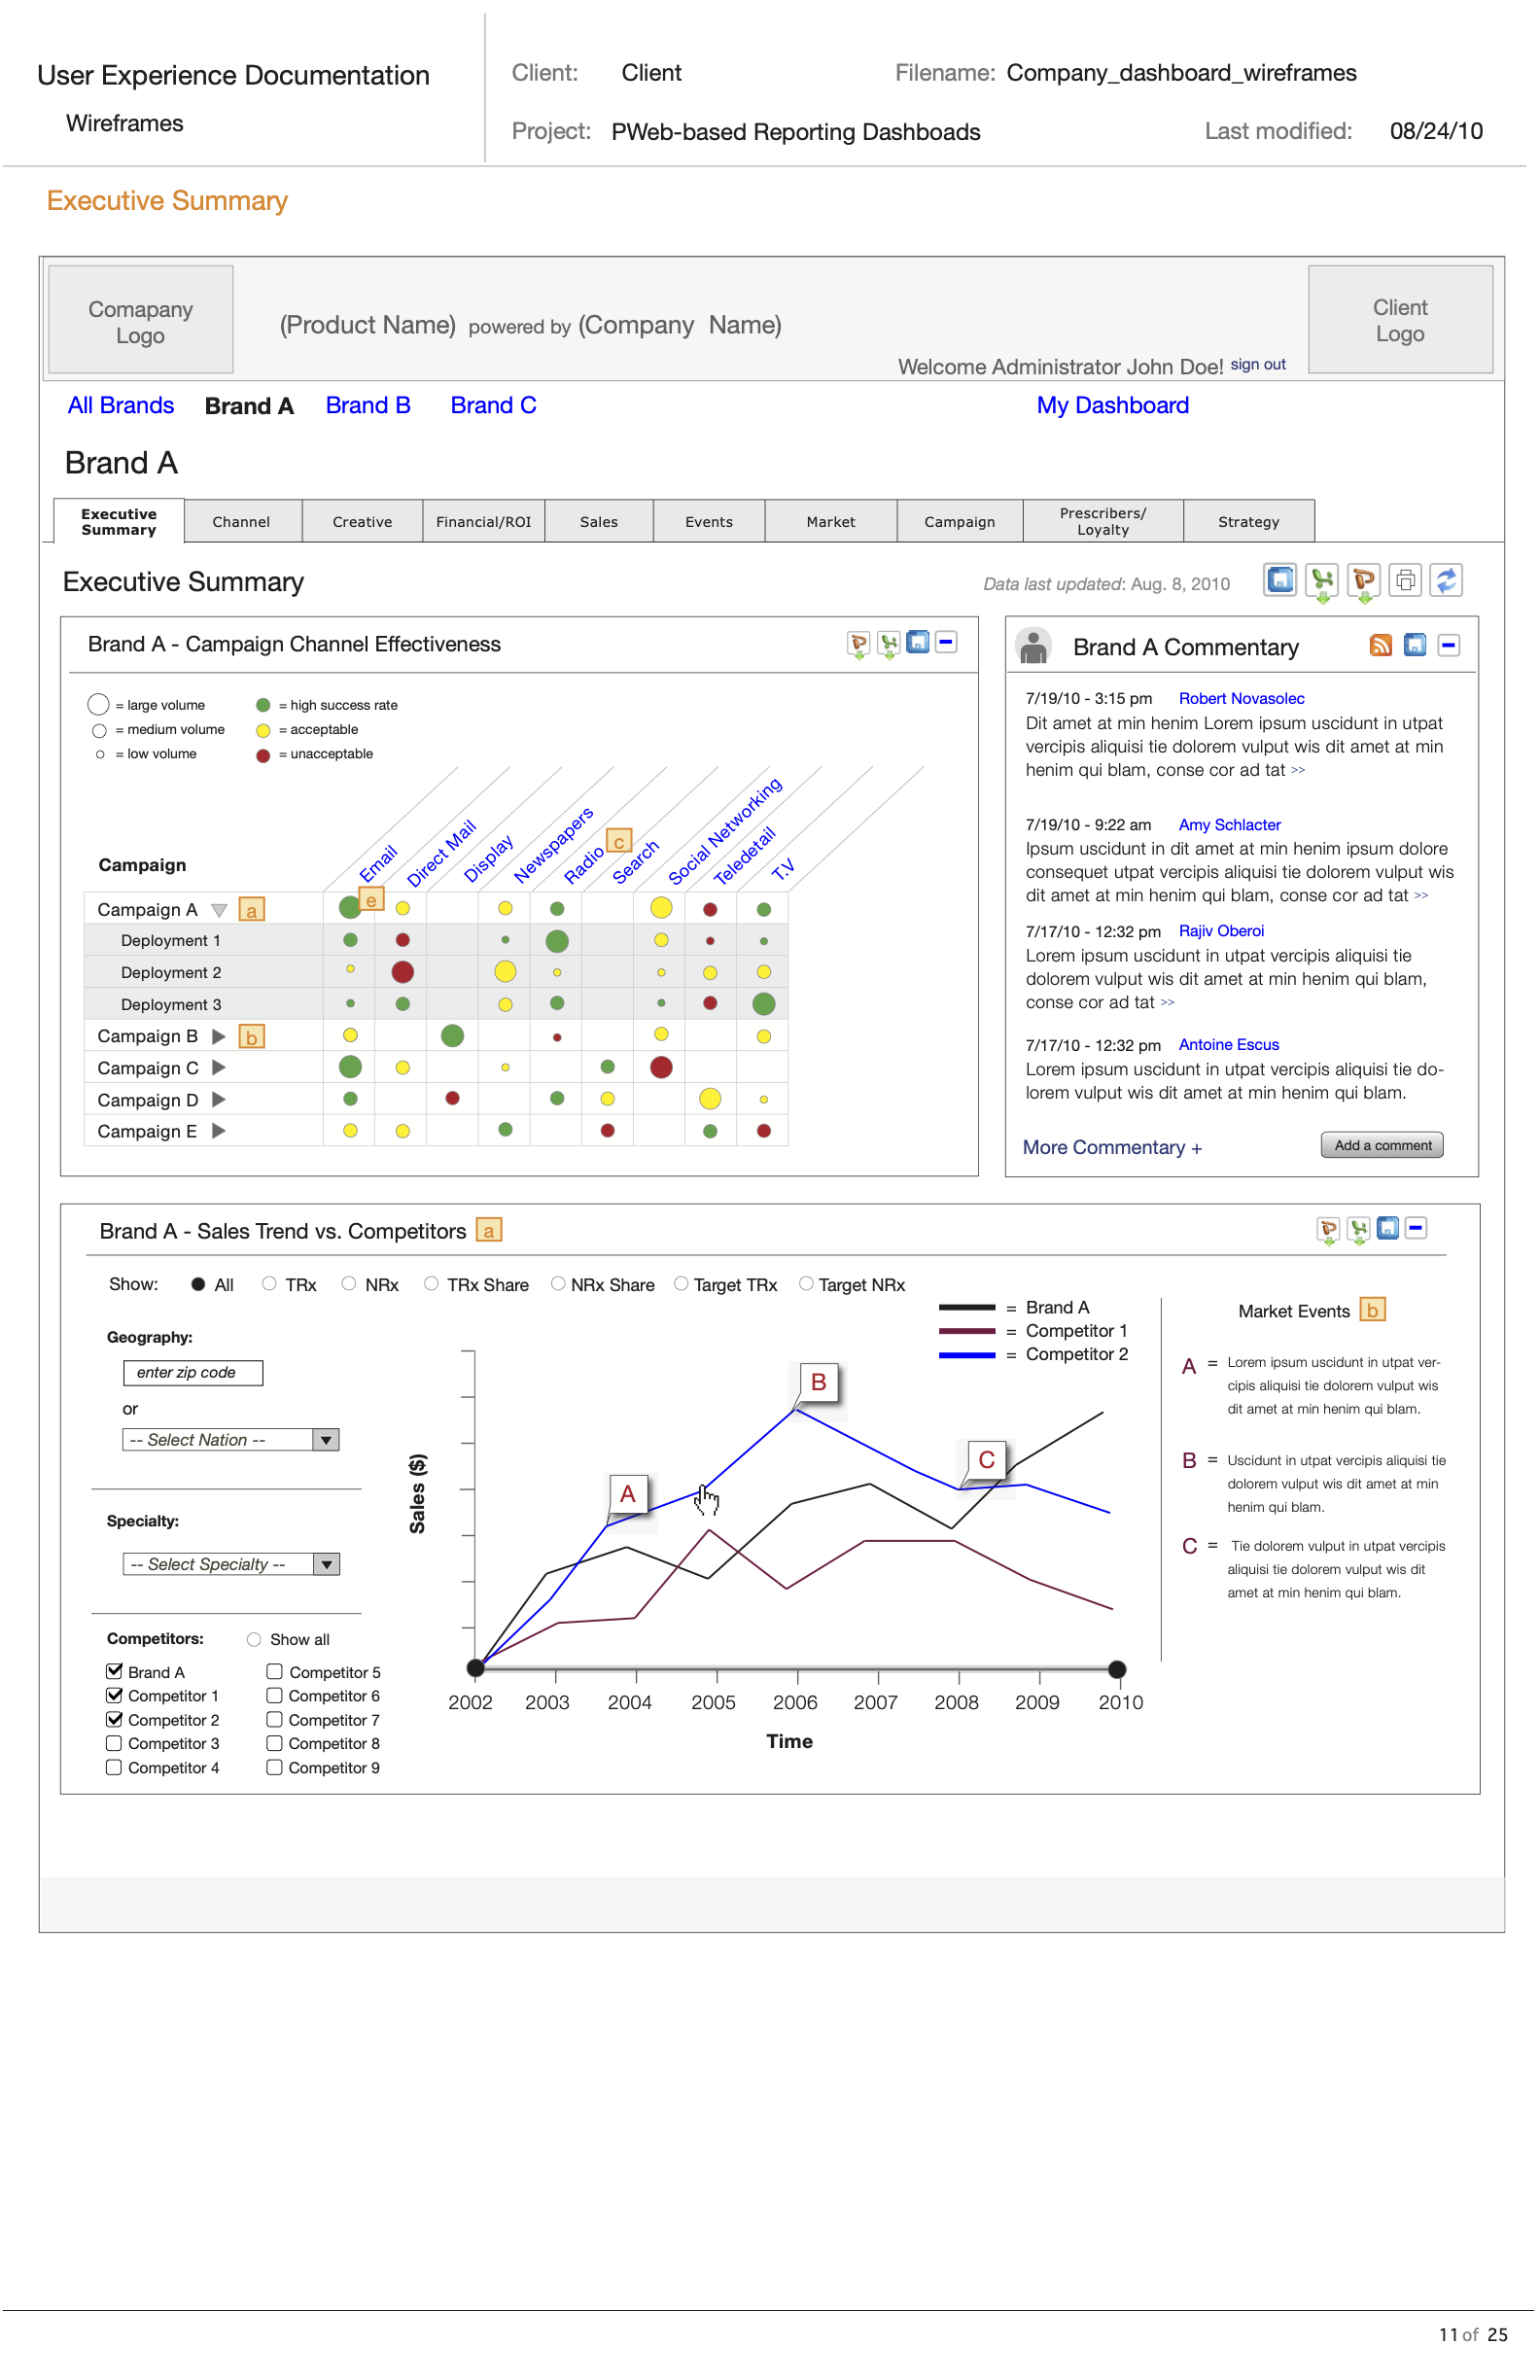 Desktop-sized wireframe of a company dashboard screen with colorful graphs